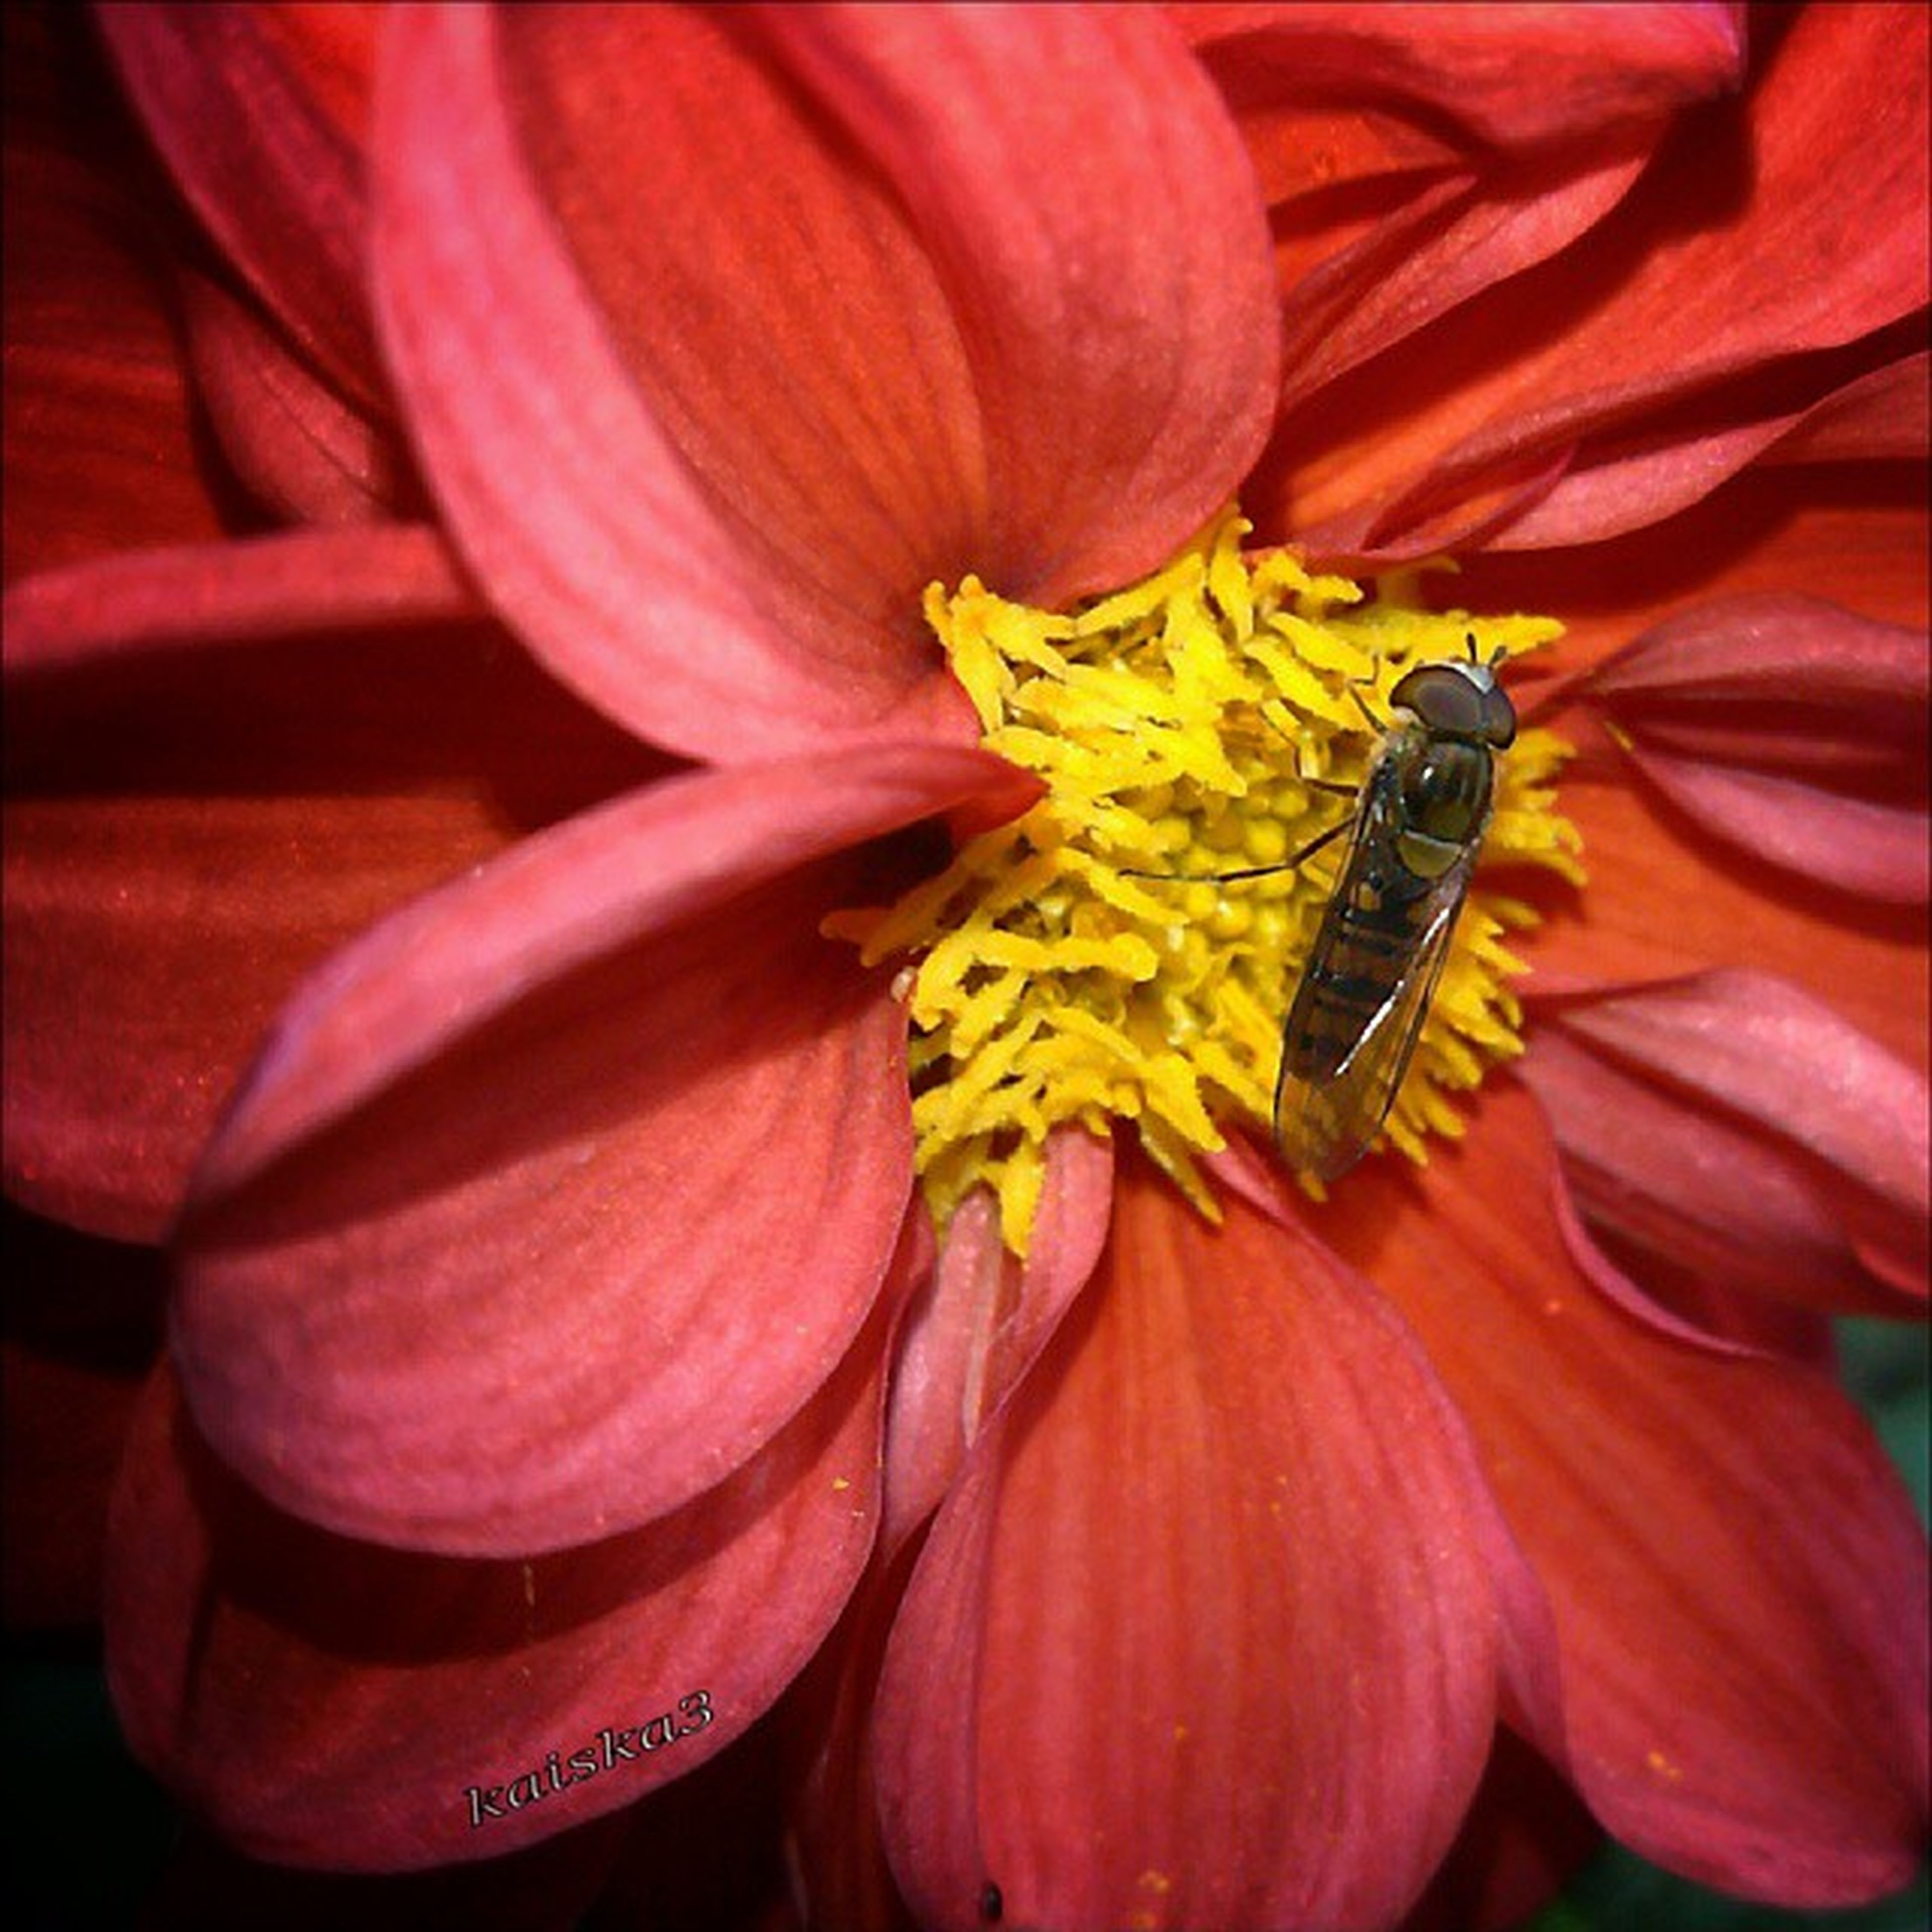 flower, petal, flower head, freshness, insect, animal themes, fragility, one animal, animals in the wild, wildlife, close-up, beauty in nature, pink color, pollen, yellow, nature, stamen, single flower, pollination, growth